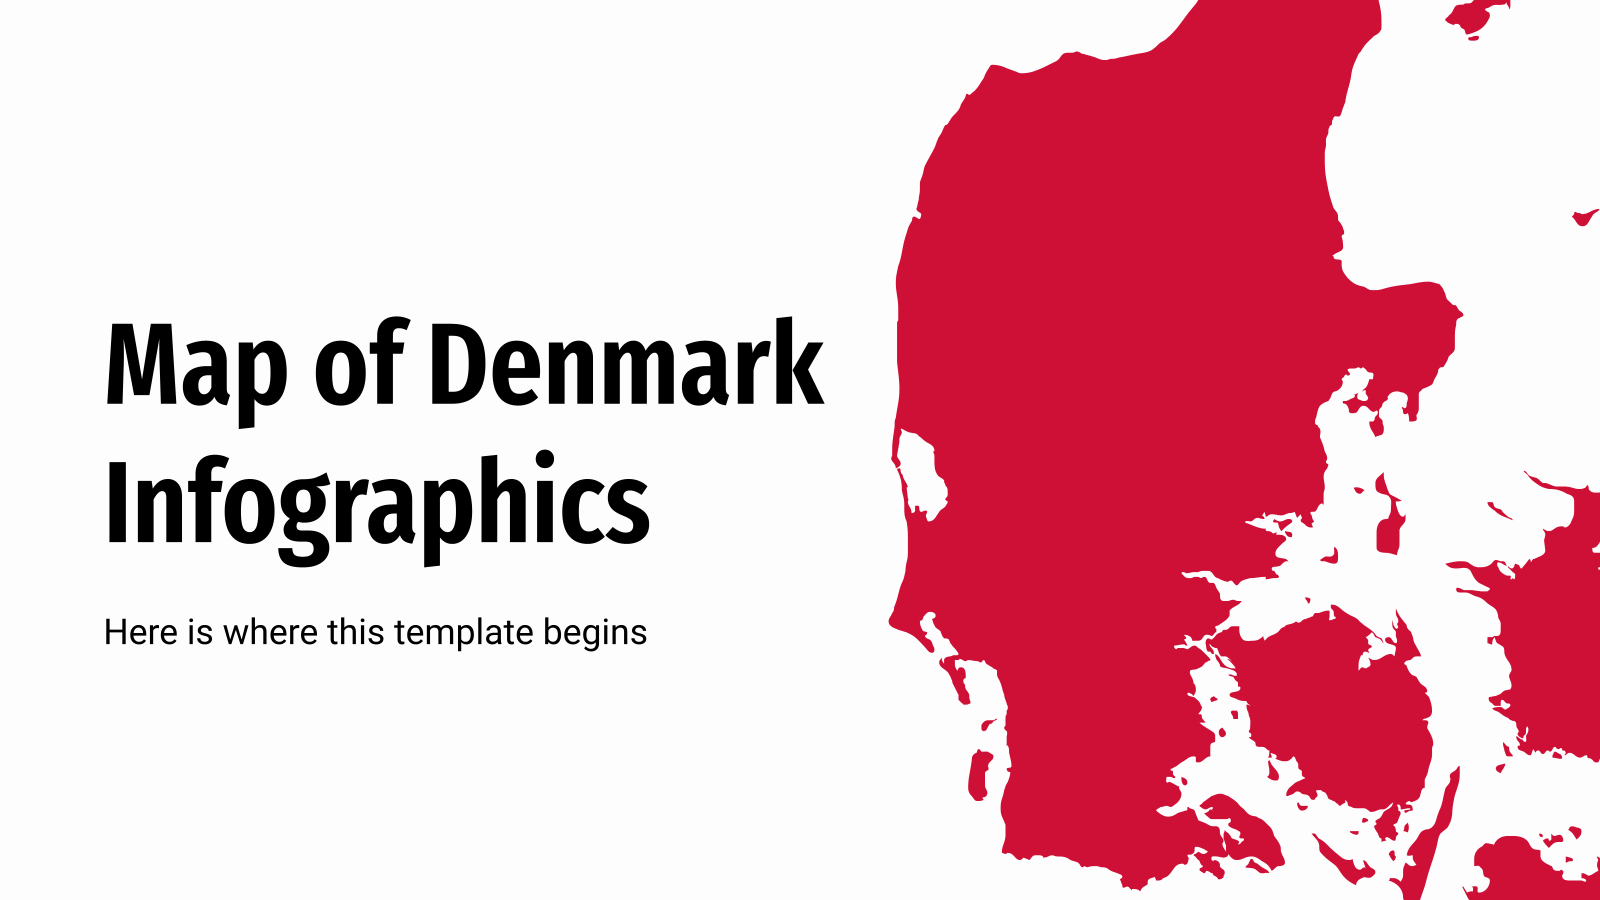 Map of Denmark Infographics presentation template